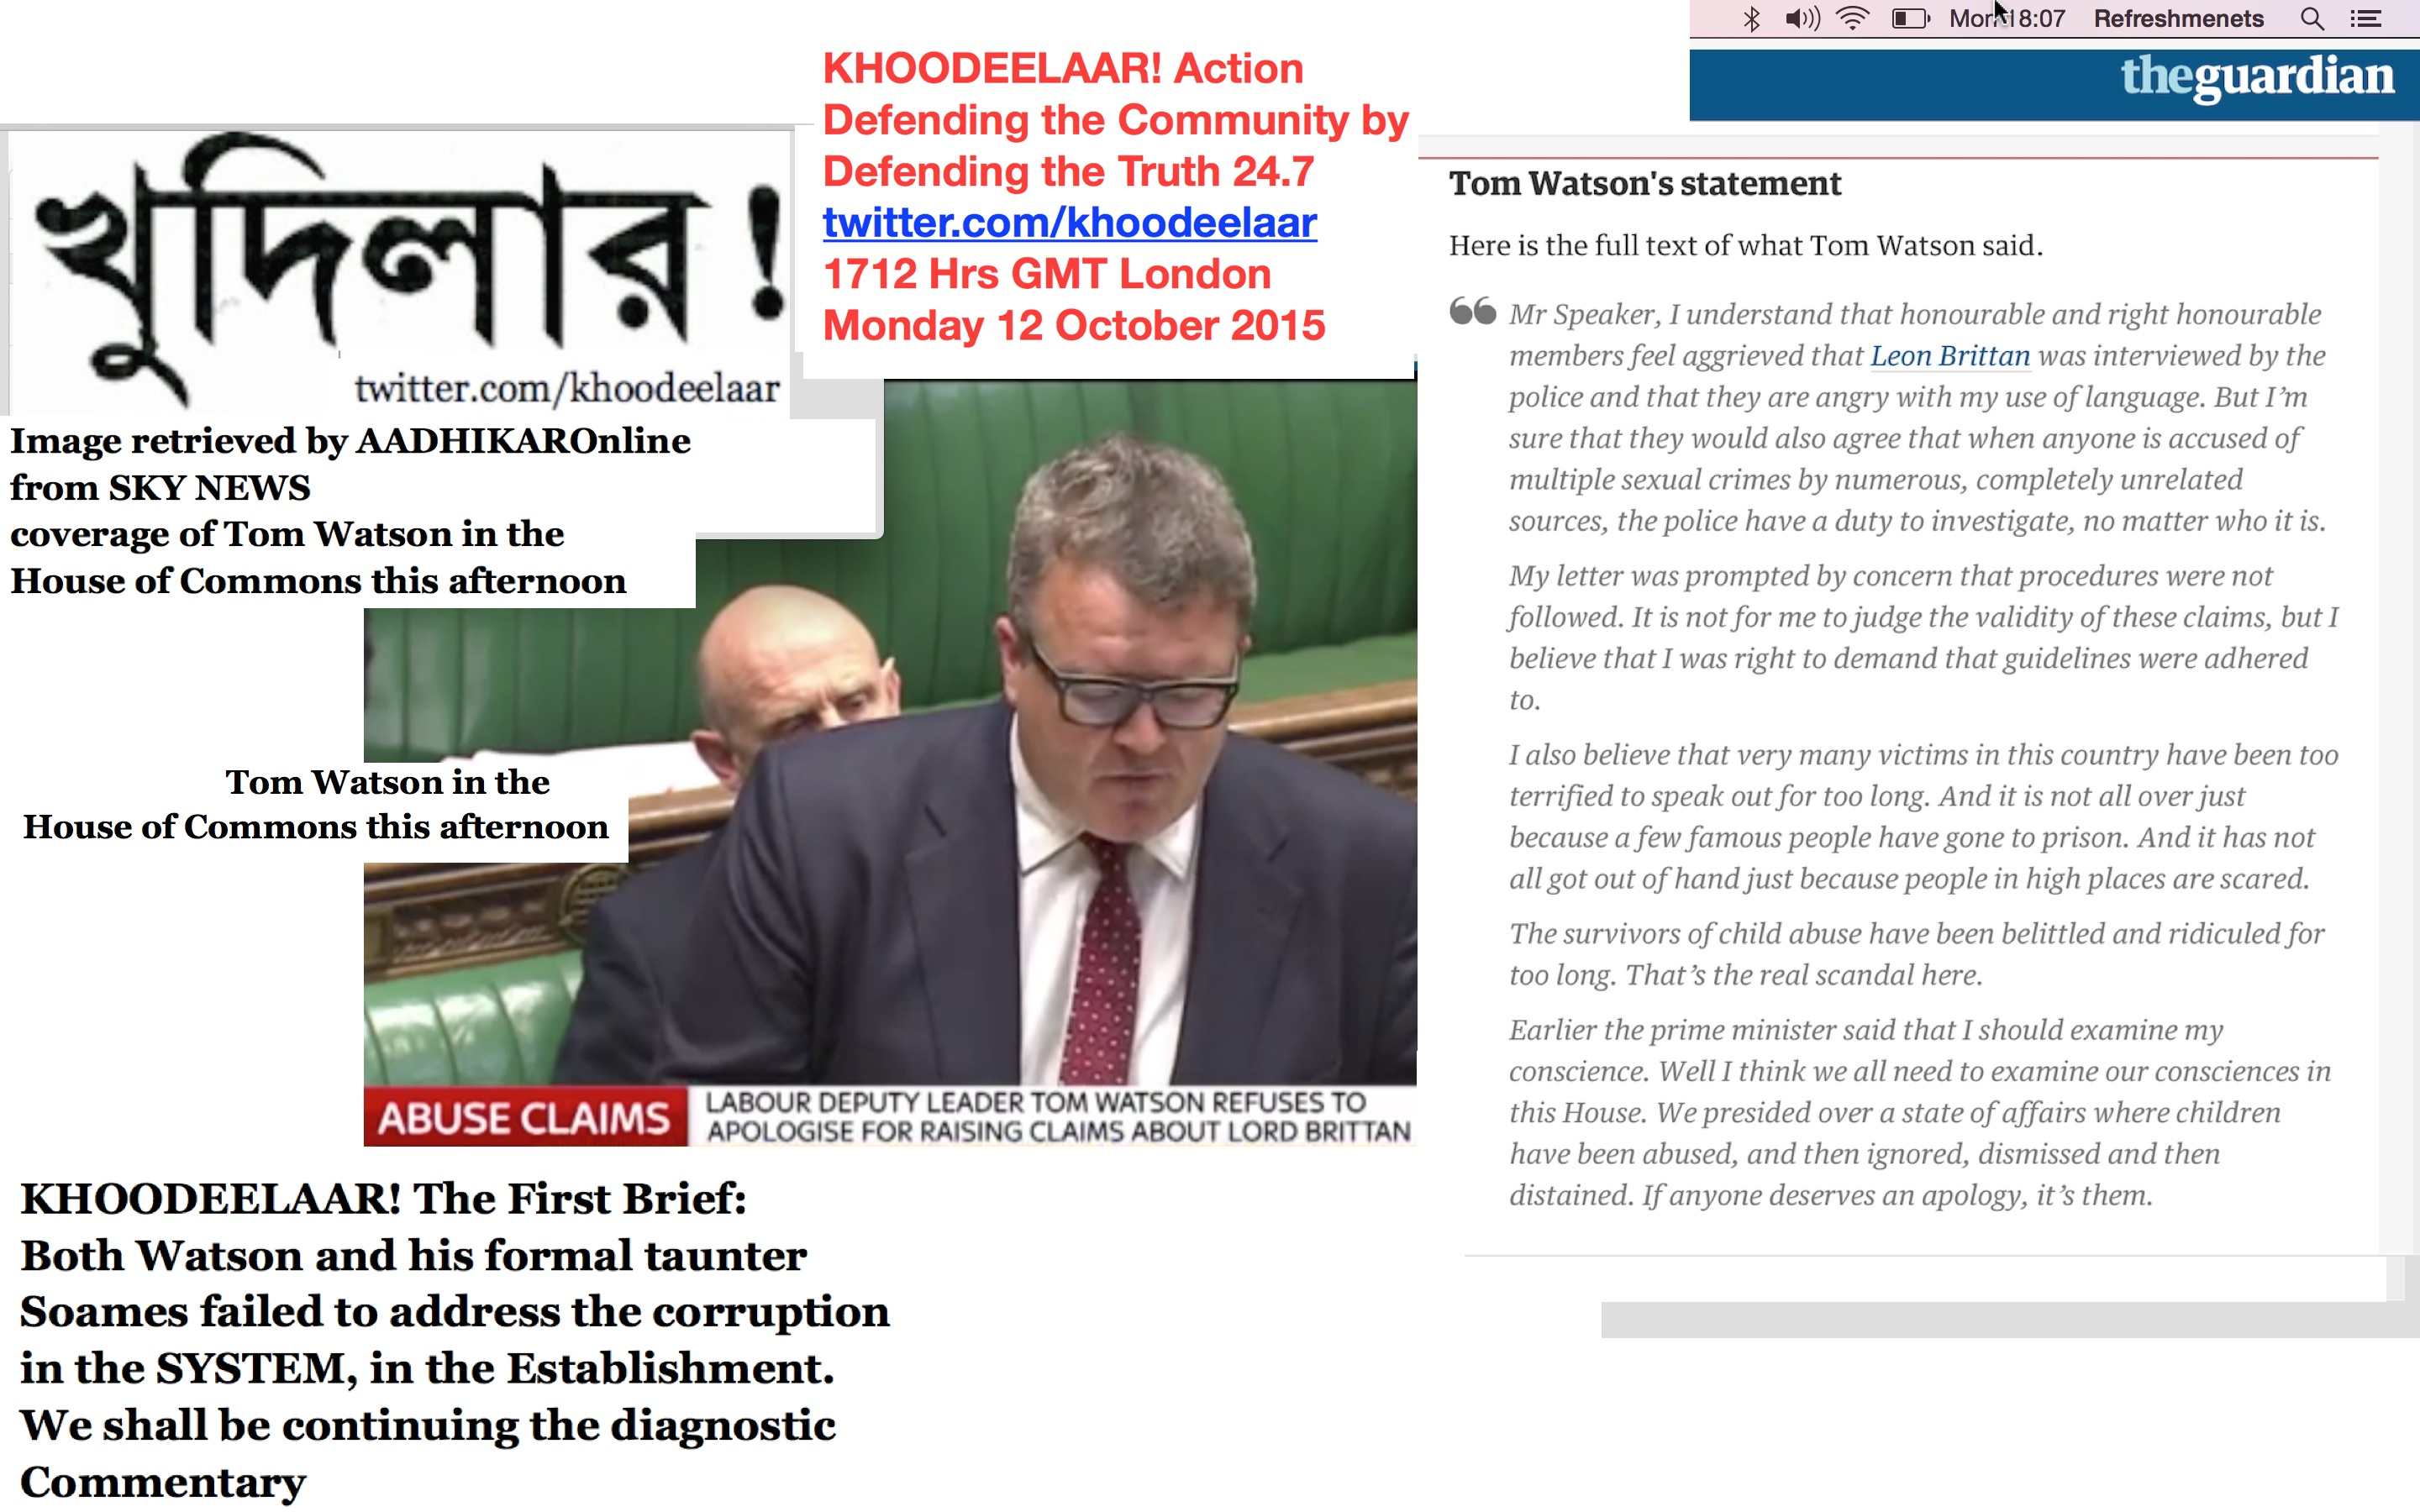 Khoodeelaar The First Brief Both Watson And His Formal Taunter